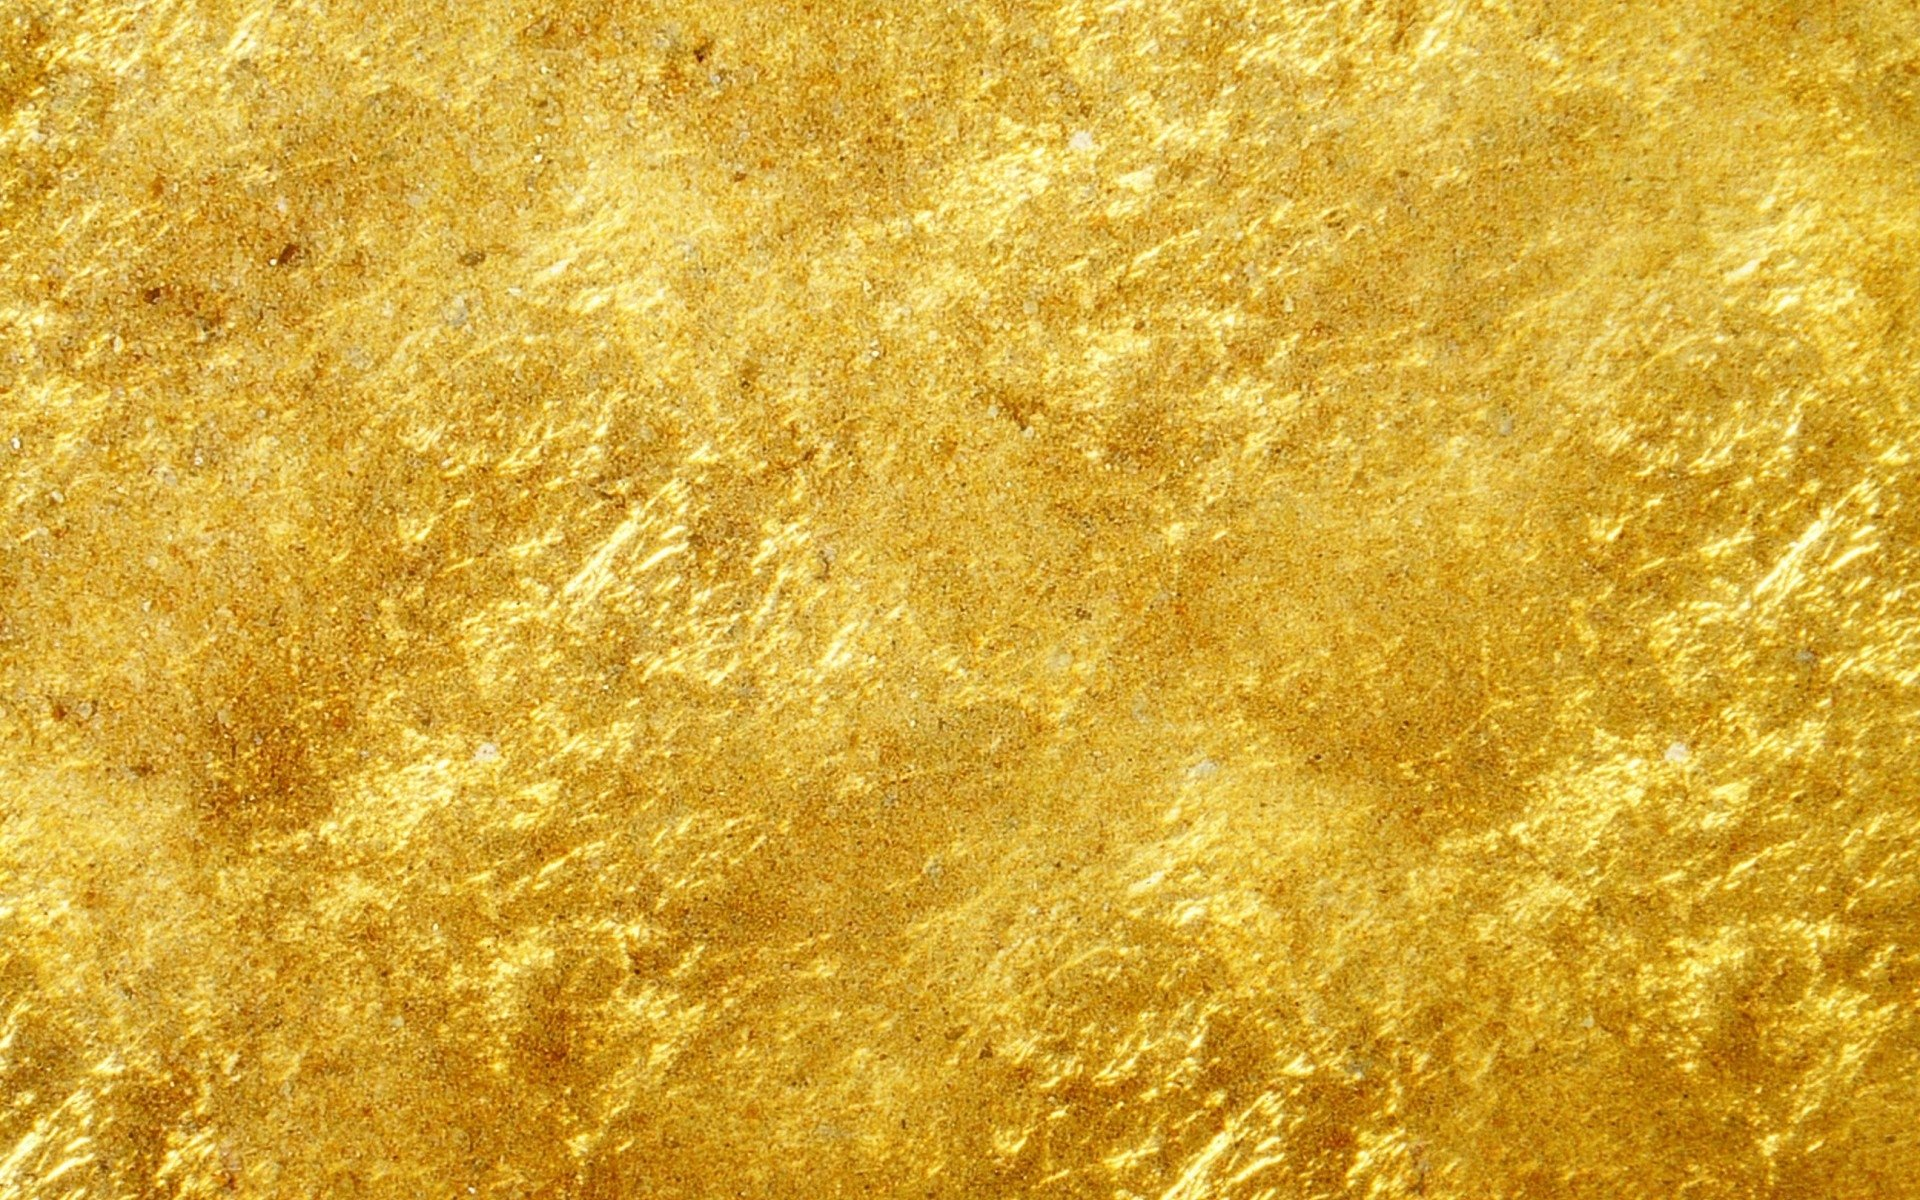 textured gold background hd wallpaper background image